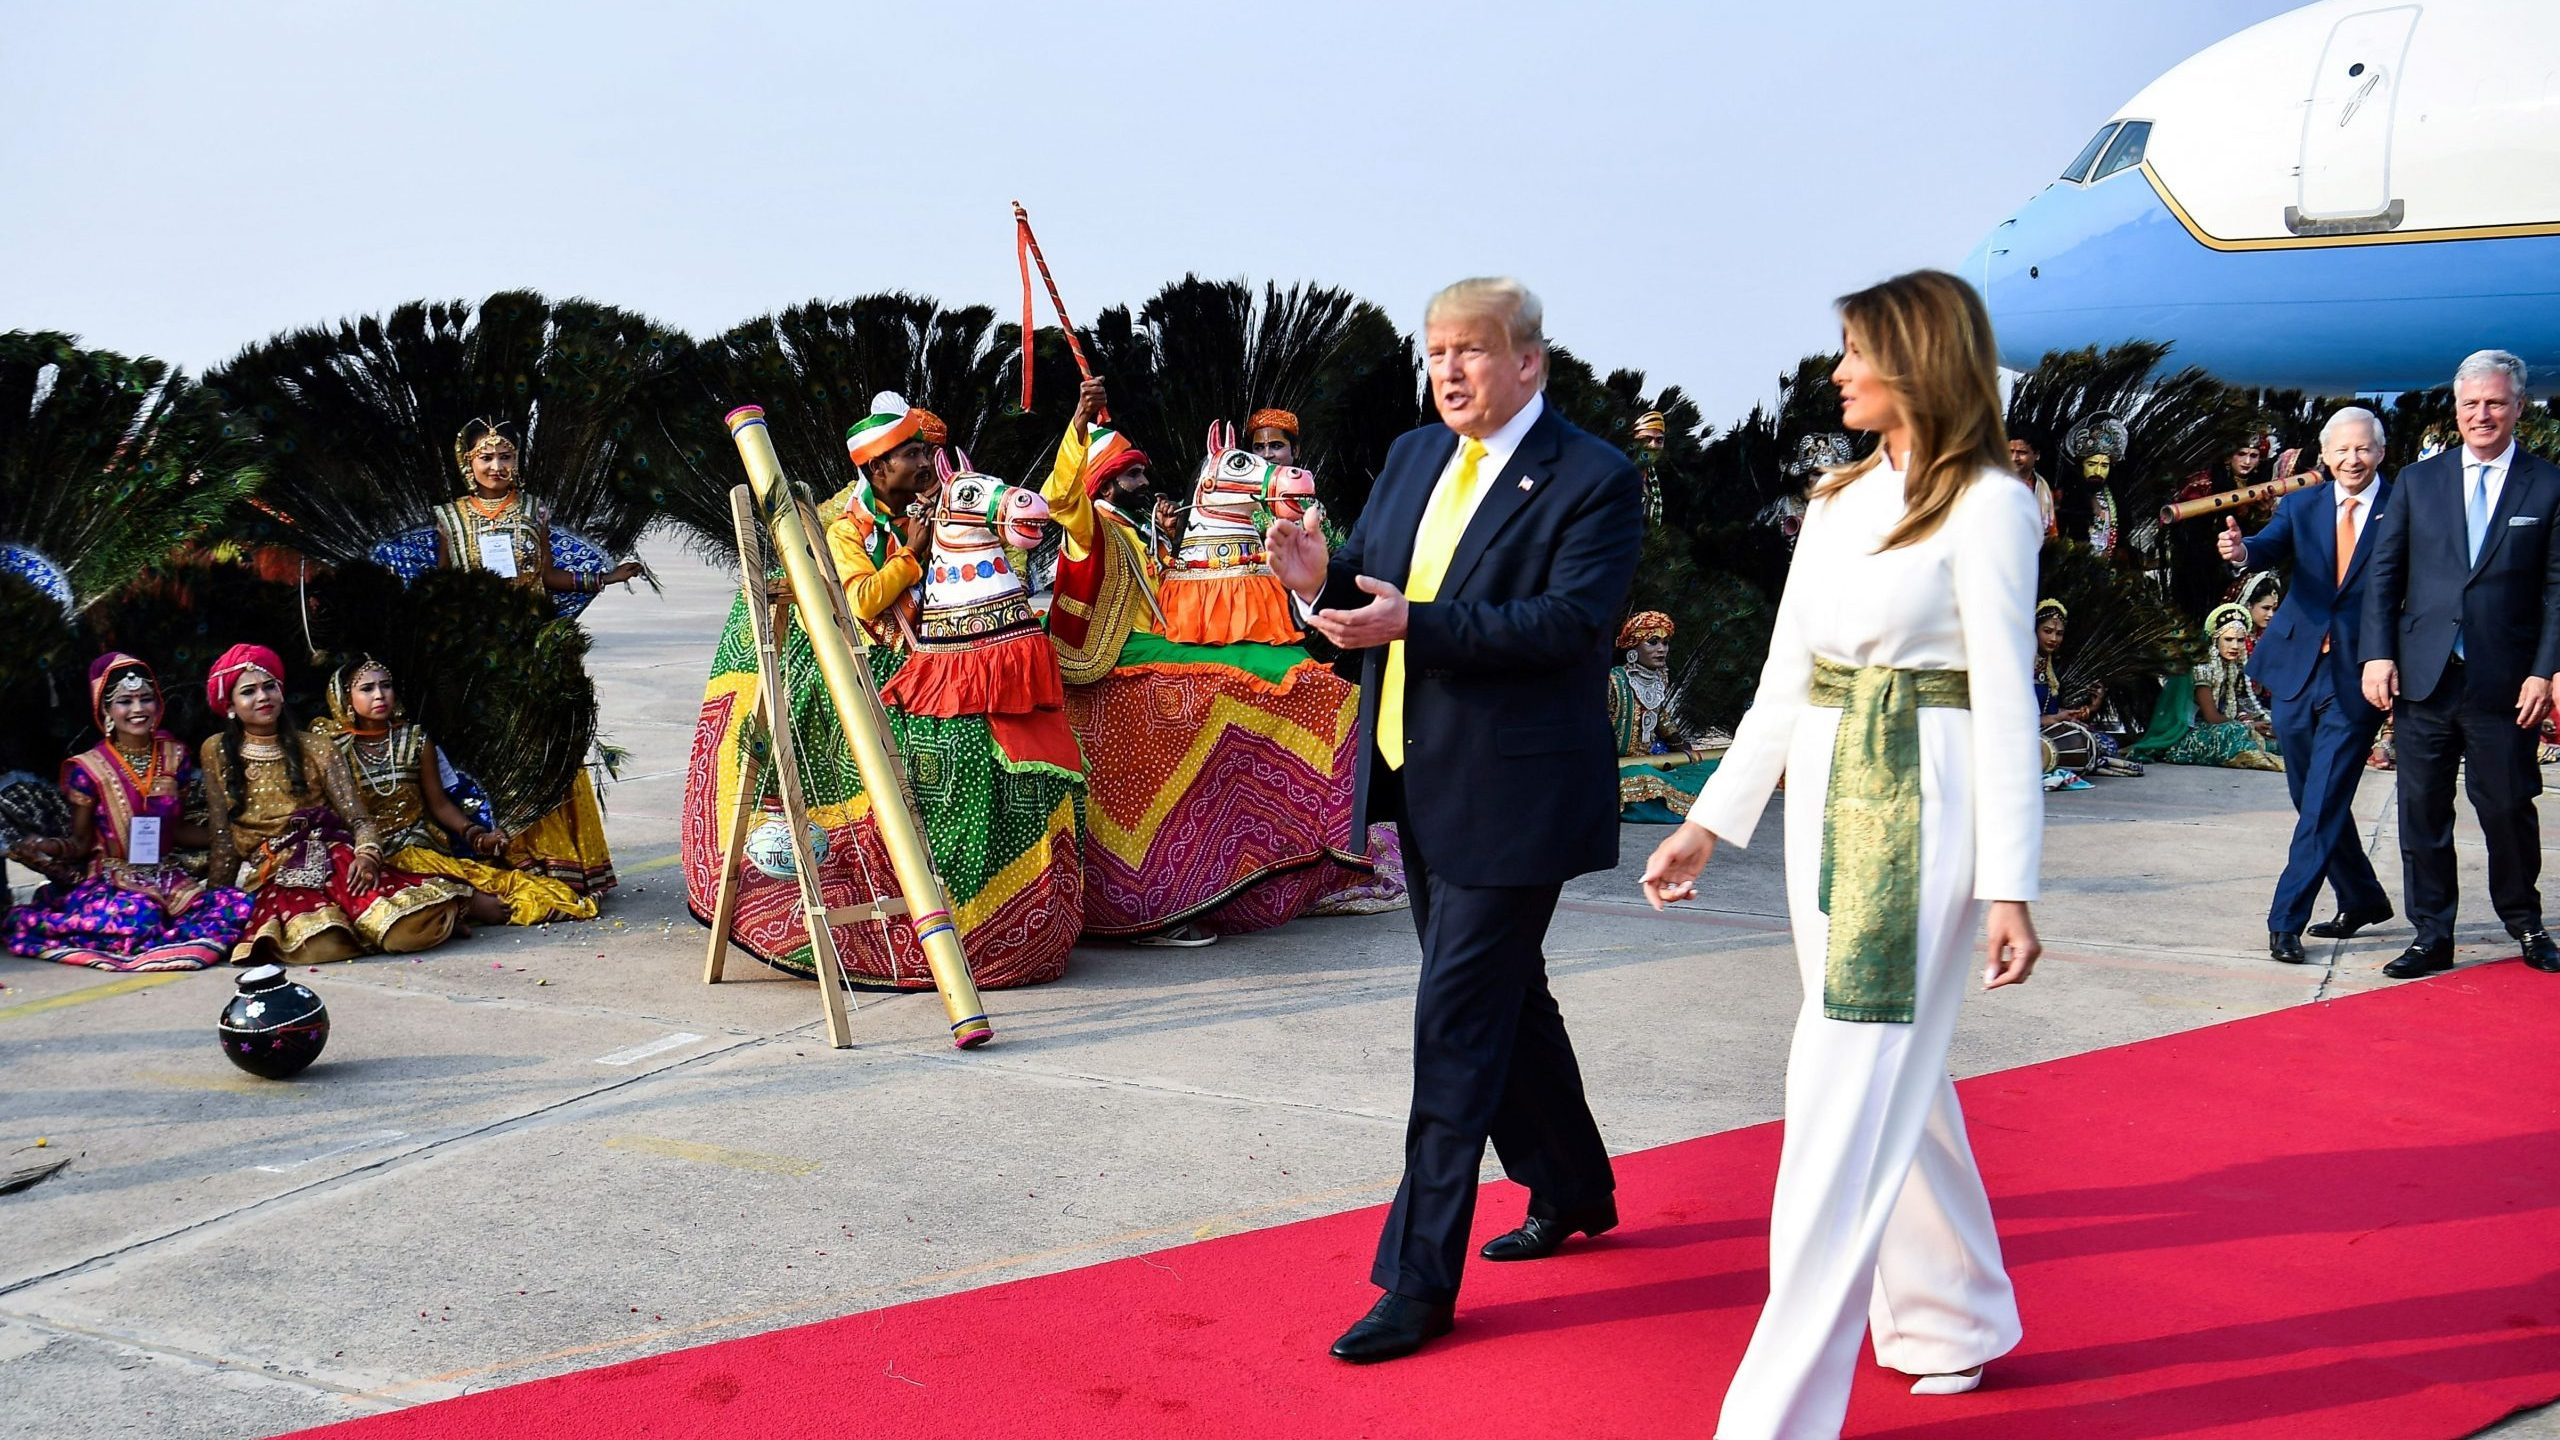 Donald Trump and First Lady Melania Trump are greeted by performers wearing traditional costumes as they arrive at Agra Air Base in Agra on Feb. 24, 2020. (Credit: MANDEL NGAN/AFP via Getty Images)